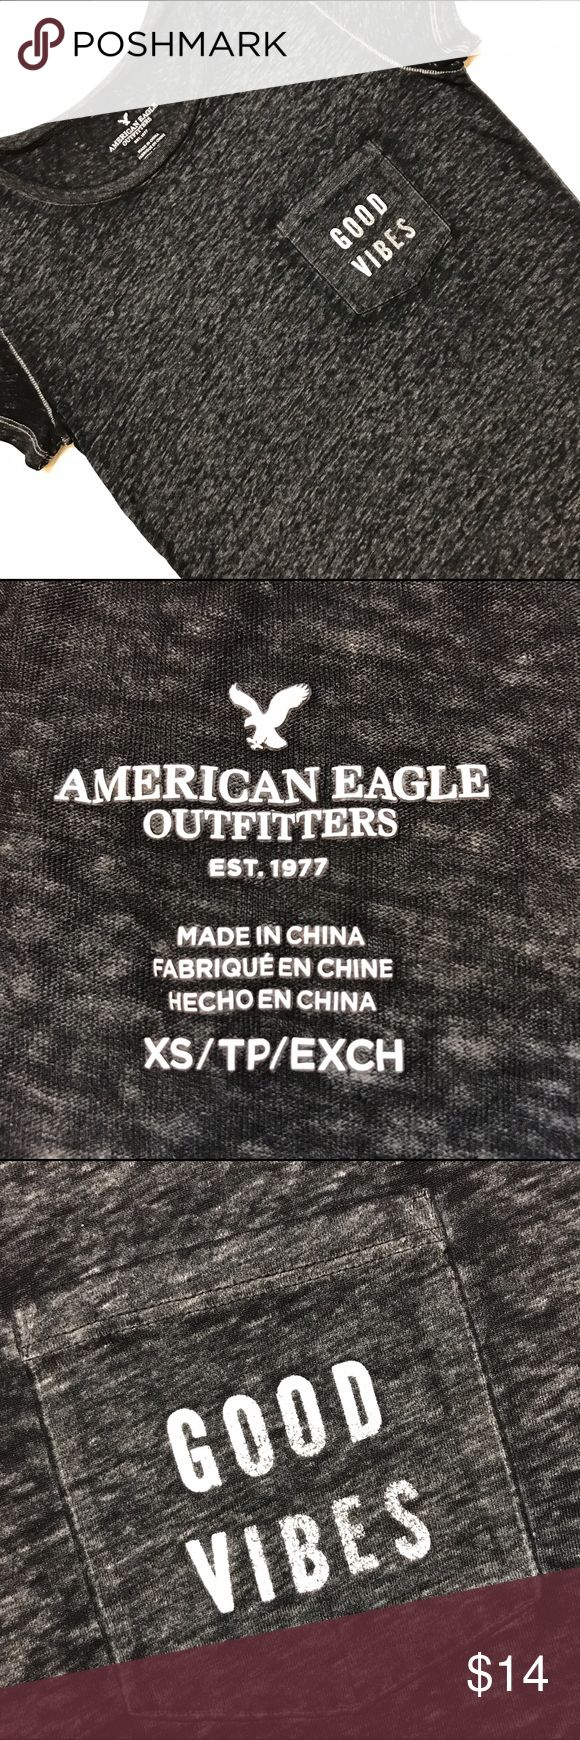 American Eagle Tshirt XS Burnout Good Vives Cute and casual Tshirt made by American eagle, size XS, good vibes pocket. American Eagle Outfitters Tops Tees - Short Sleeve